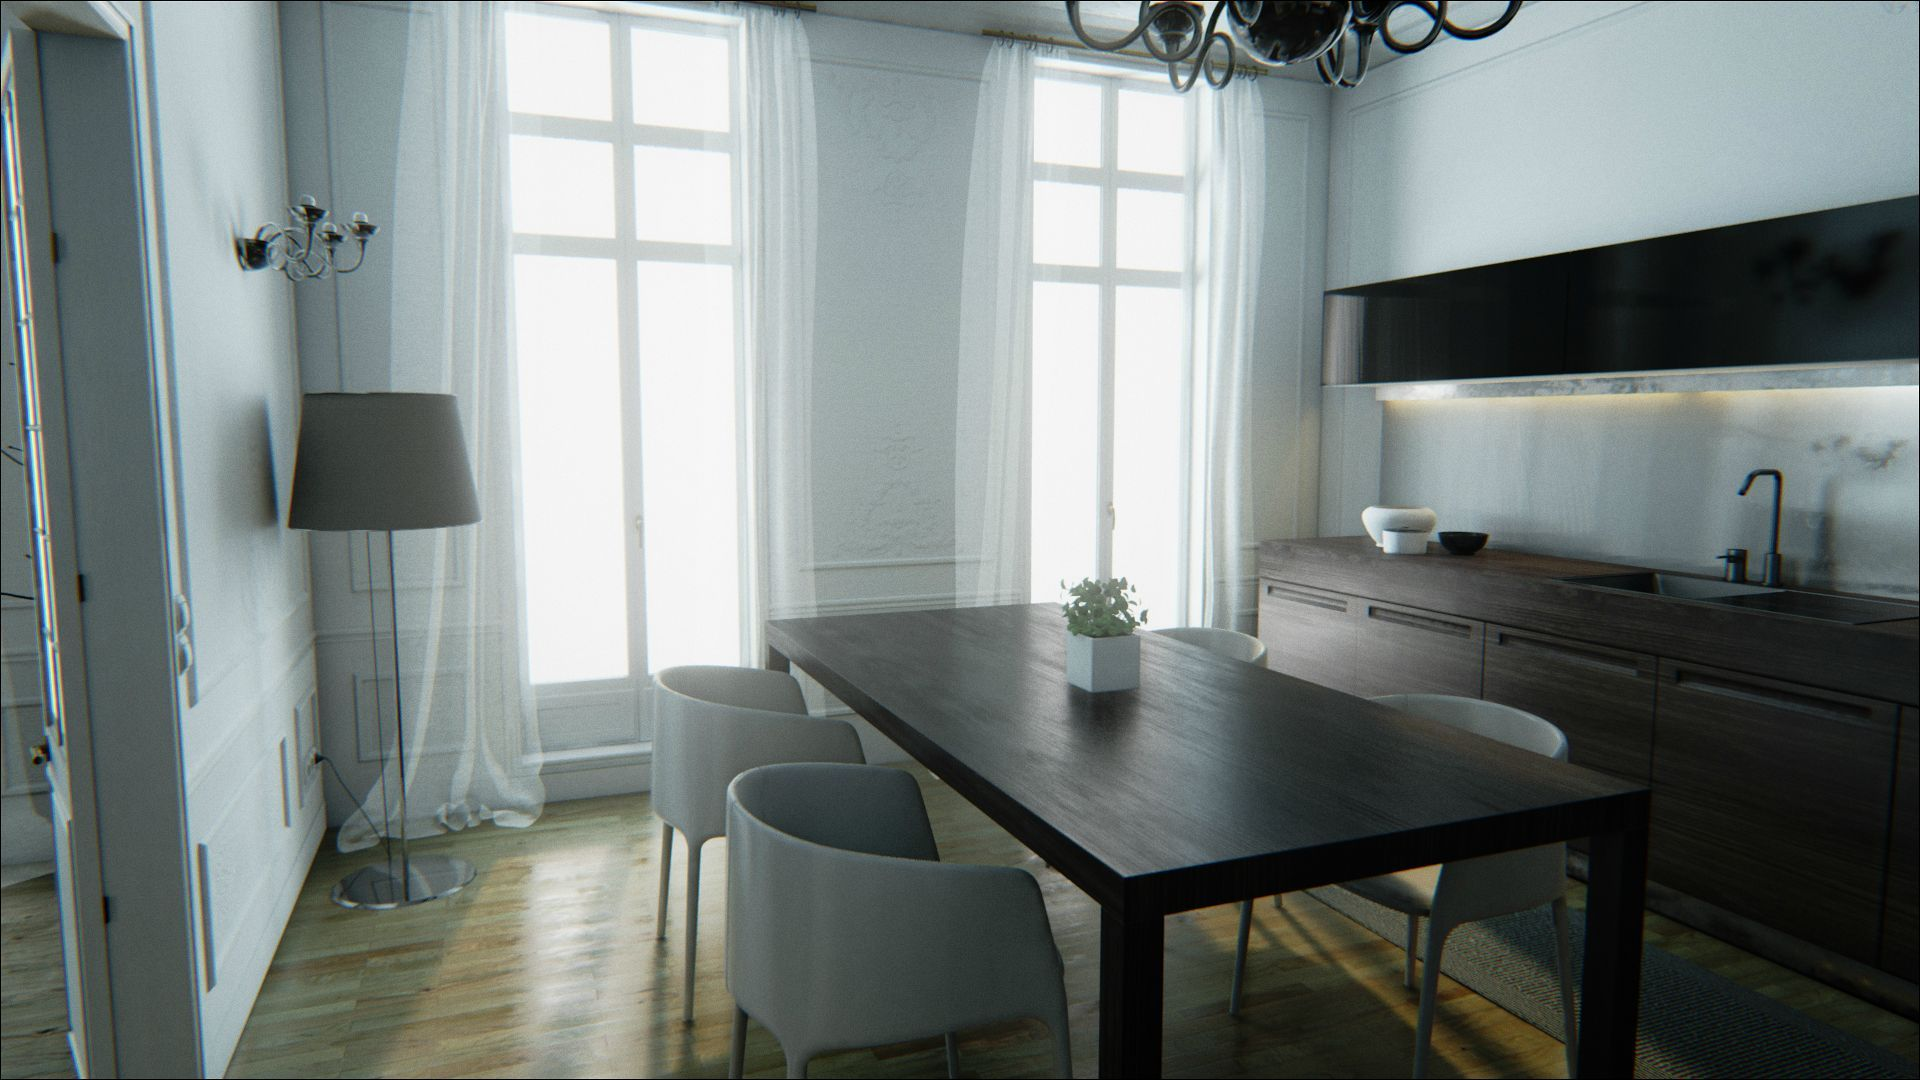 Unreal Engine 4 Is Simply Amazing